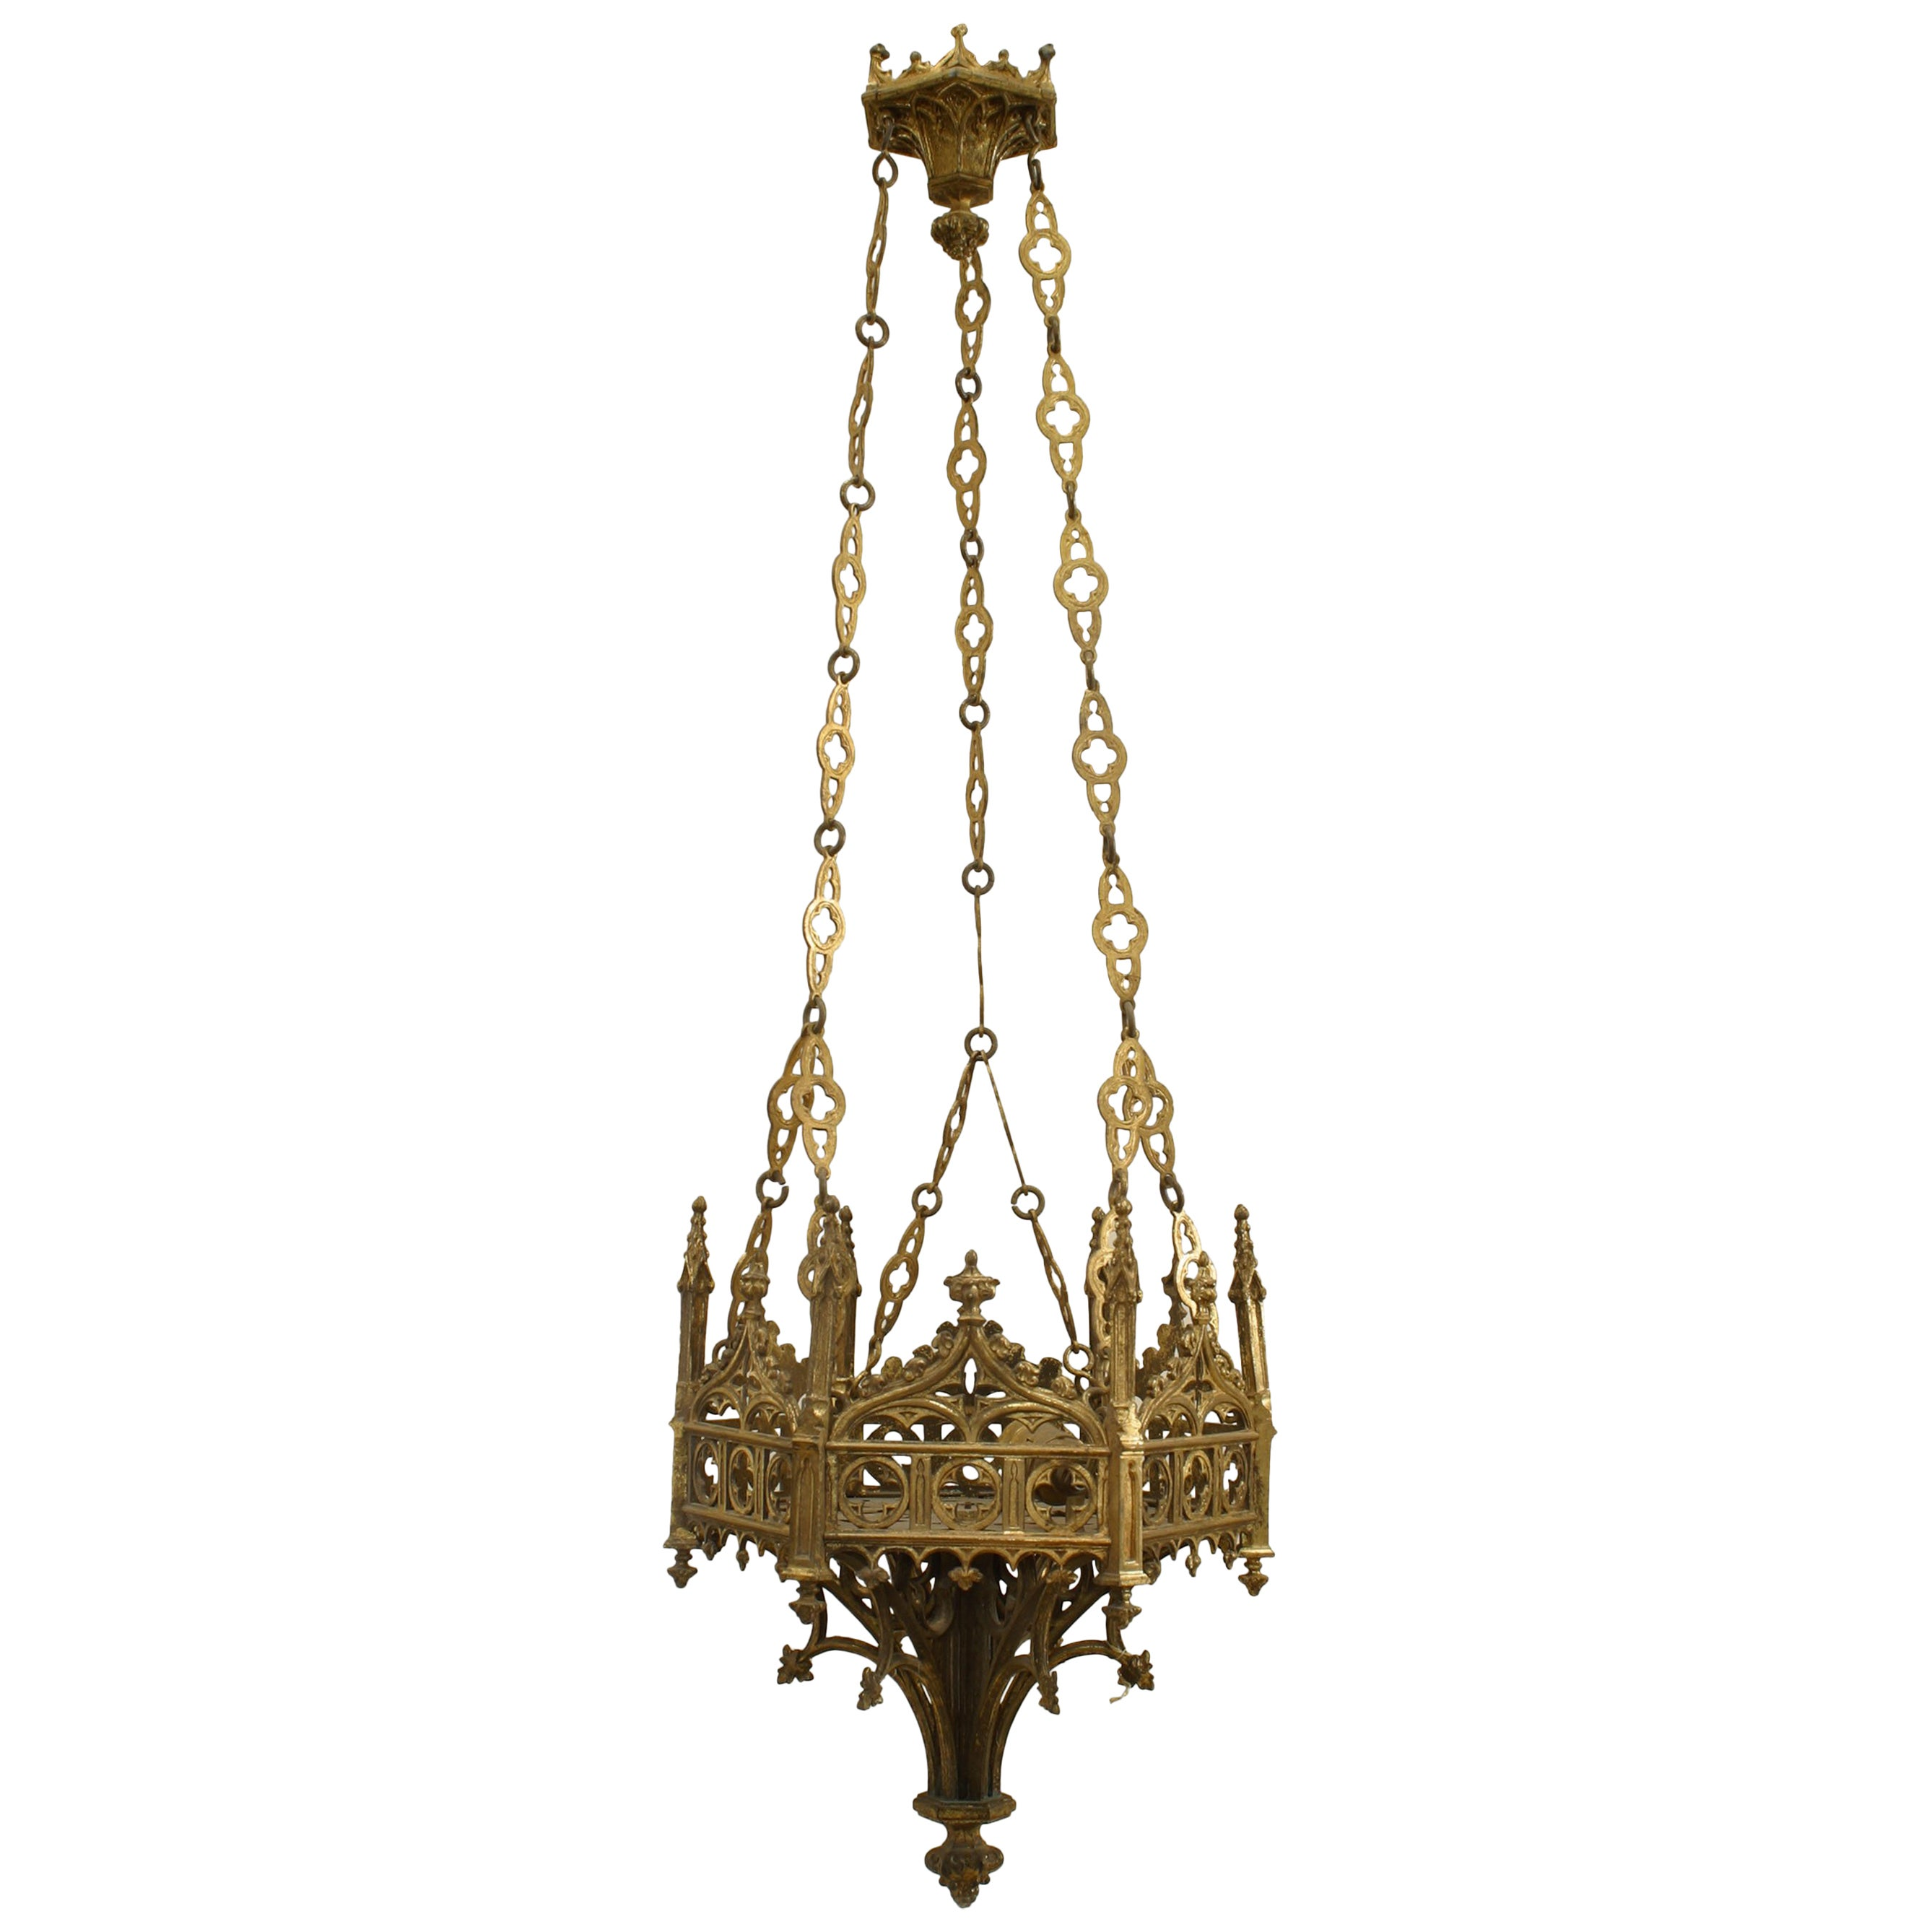 Similar English Gothic Revival Style, 19th Century Six-Sided Sanctuary Fixtures